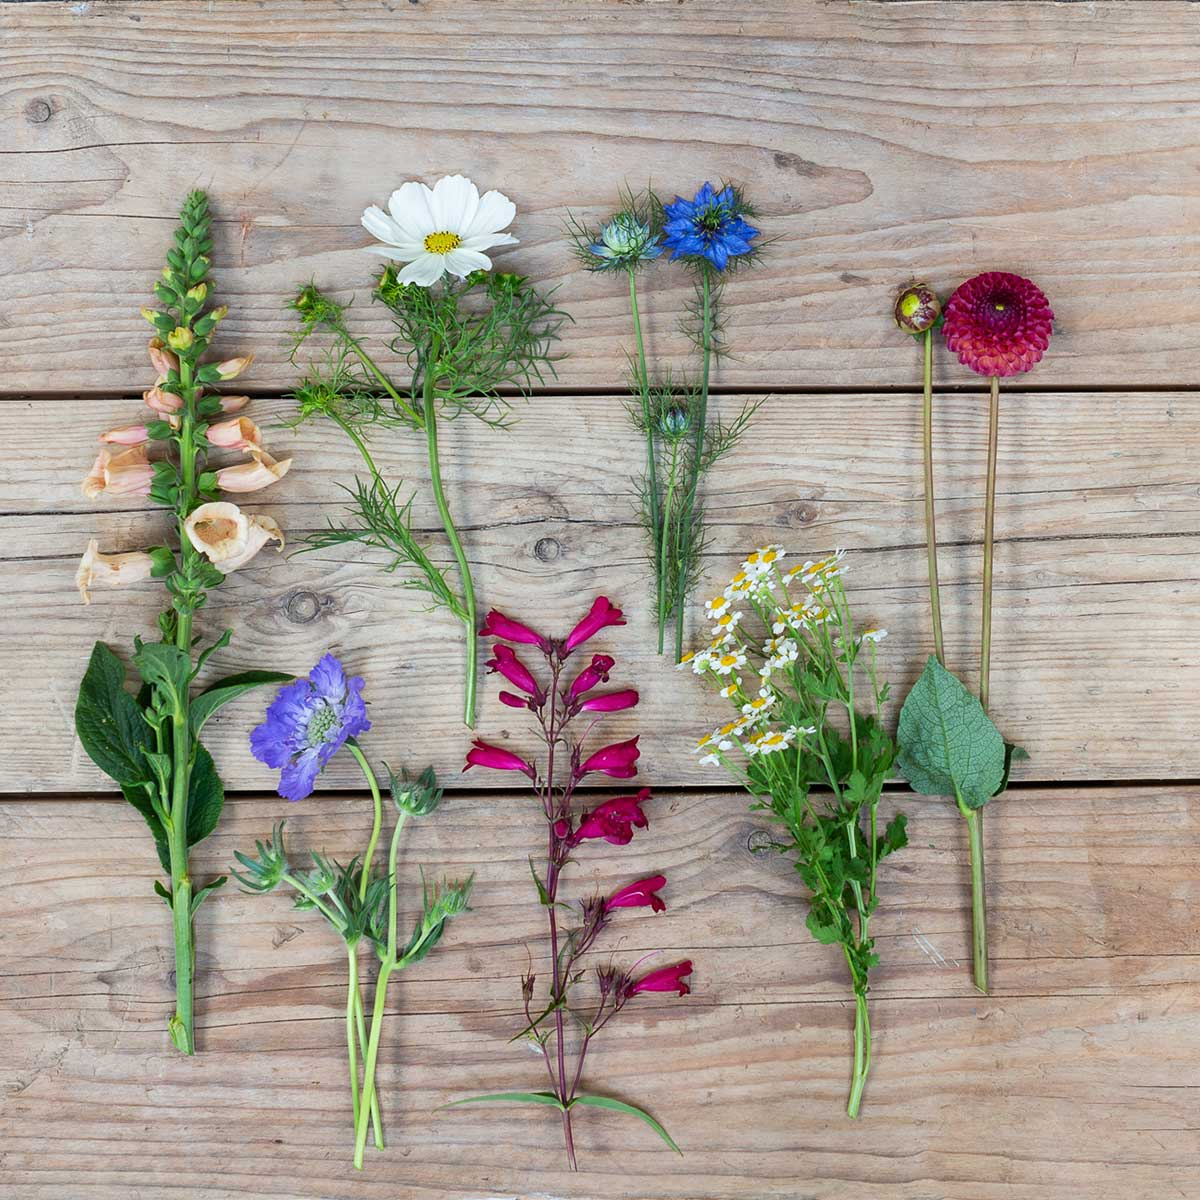 English Seasonal Flowers That Make The Cut